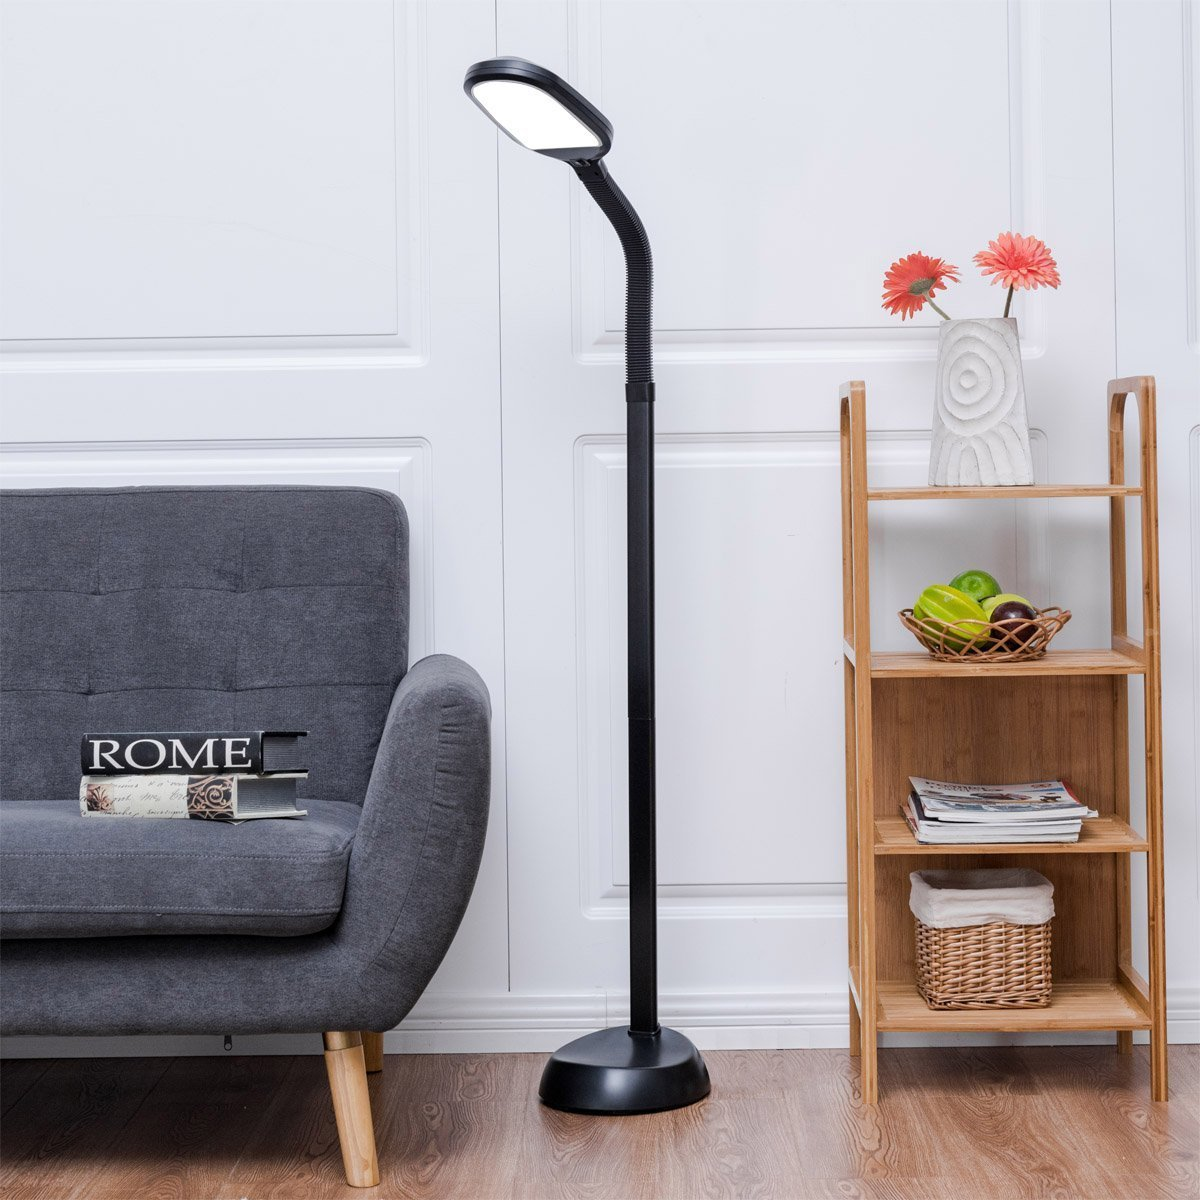 Giantex LED Floor Lamp for Reading Gooseneck Standing Lamp Energy Saving Floor Light for Living Room, Bedroom, Office (Black) by Giantex